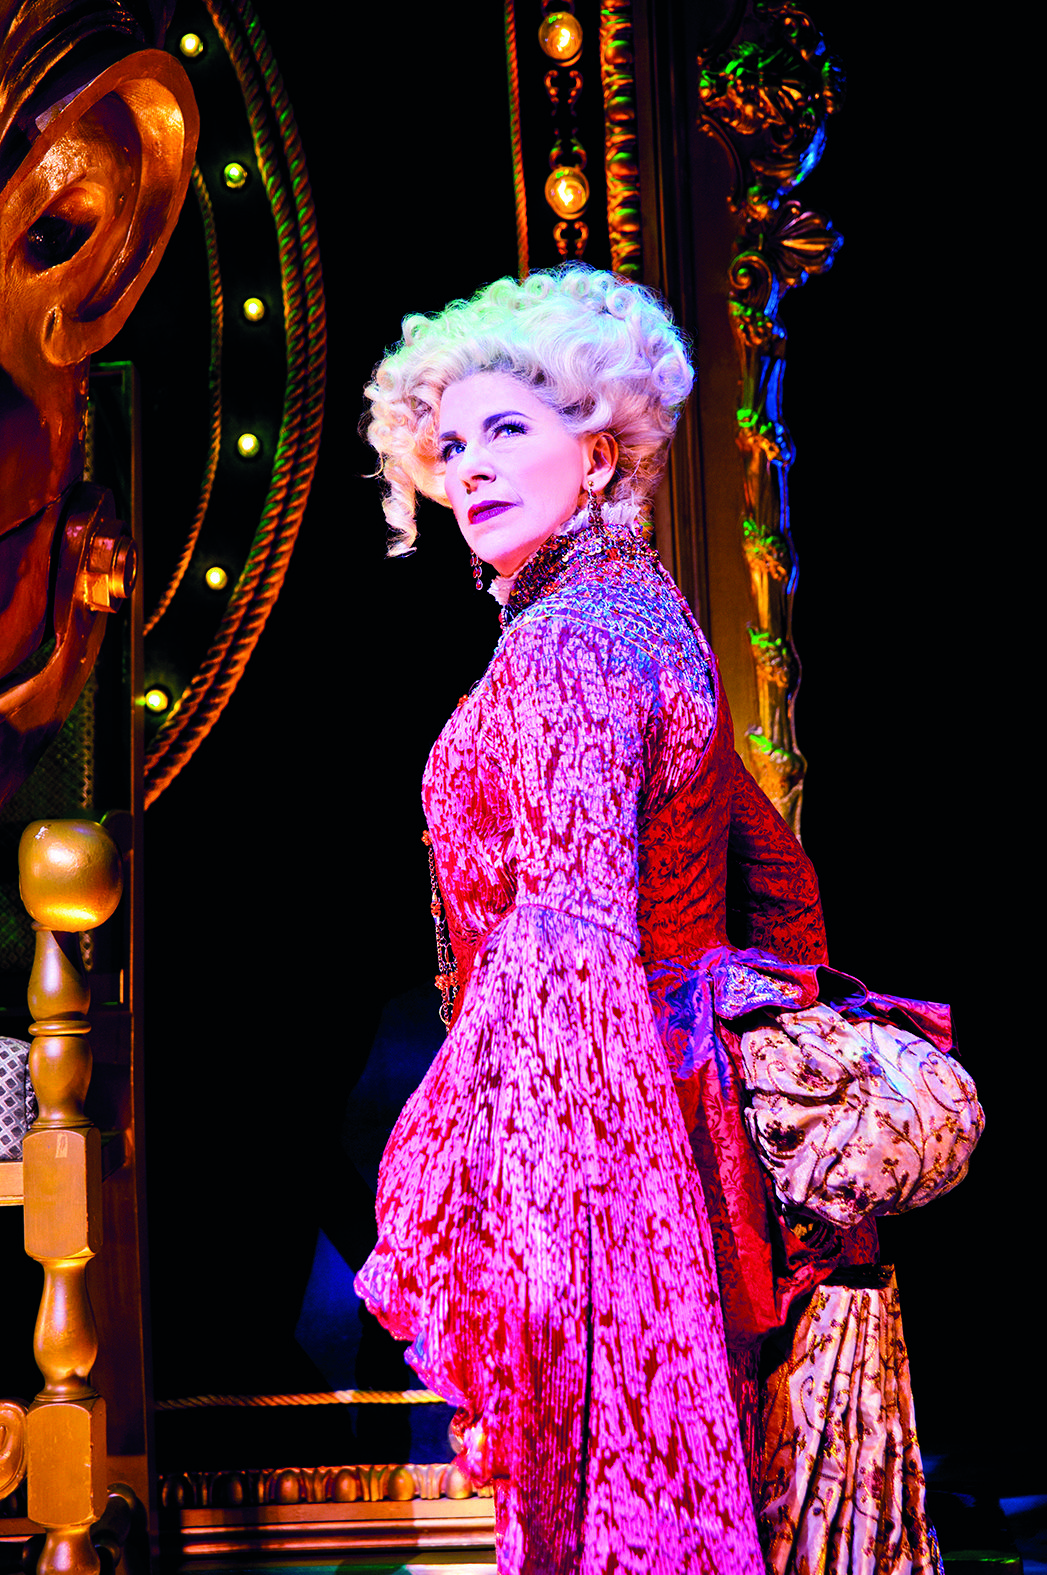 Louise Plowright as Madame Morrible - Wicked | Musical Theatre ...